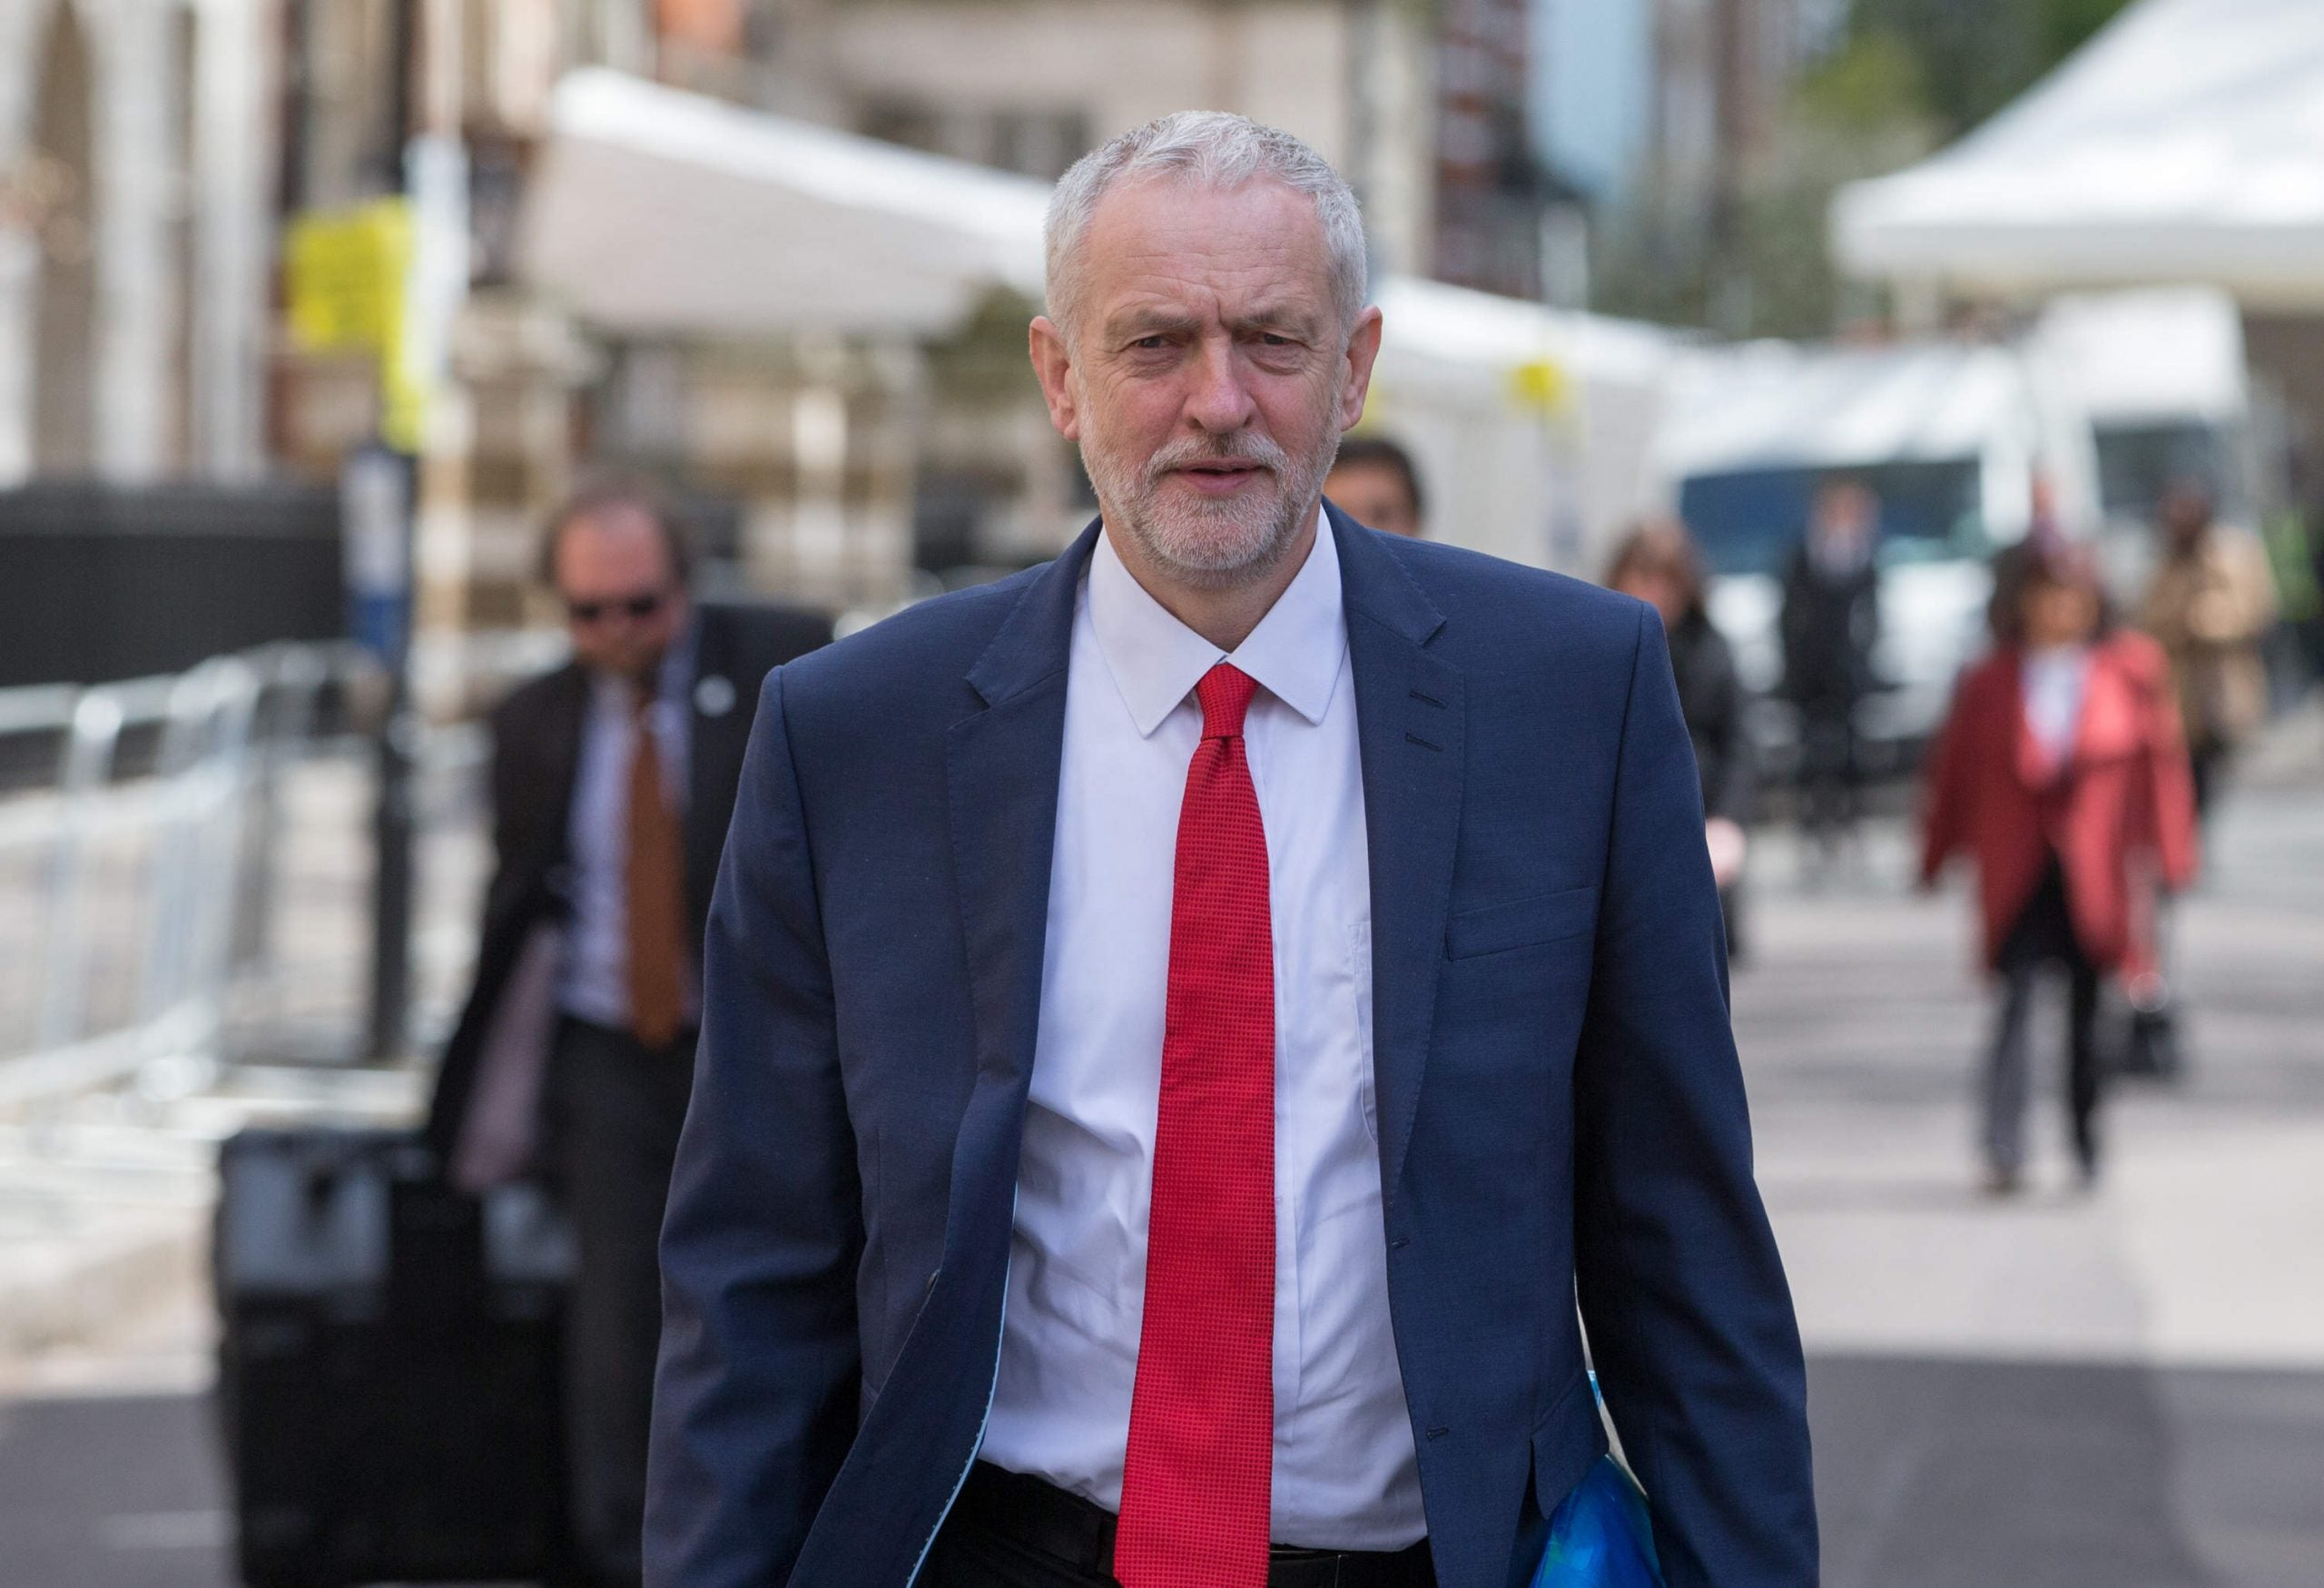 The government is struggling, but Nuneaton has not warmed to Jeremy Corbyn's Labour